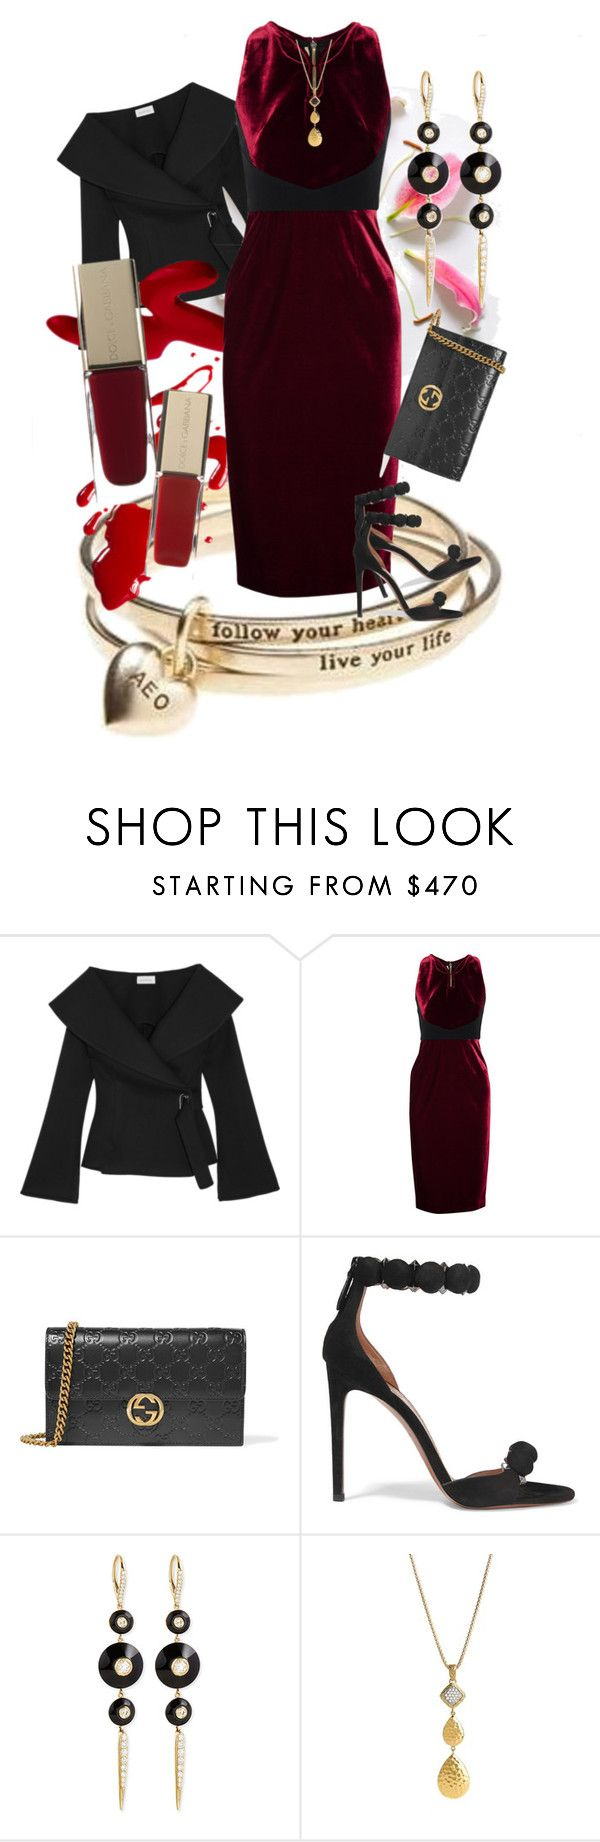 """Turning Heads"" by rita257 ❤ liked on Polyvore featuring American Eagle Outfitters, Beaufille, Roland Mouret, Gucci, Alaïa, Maria Canale and John Hardy"